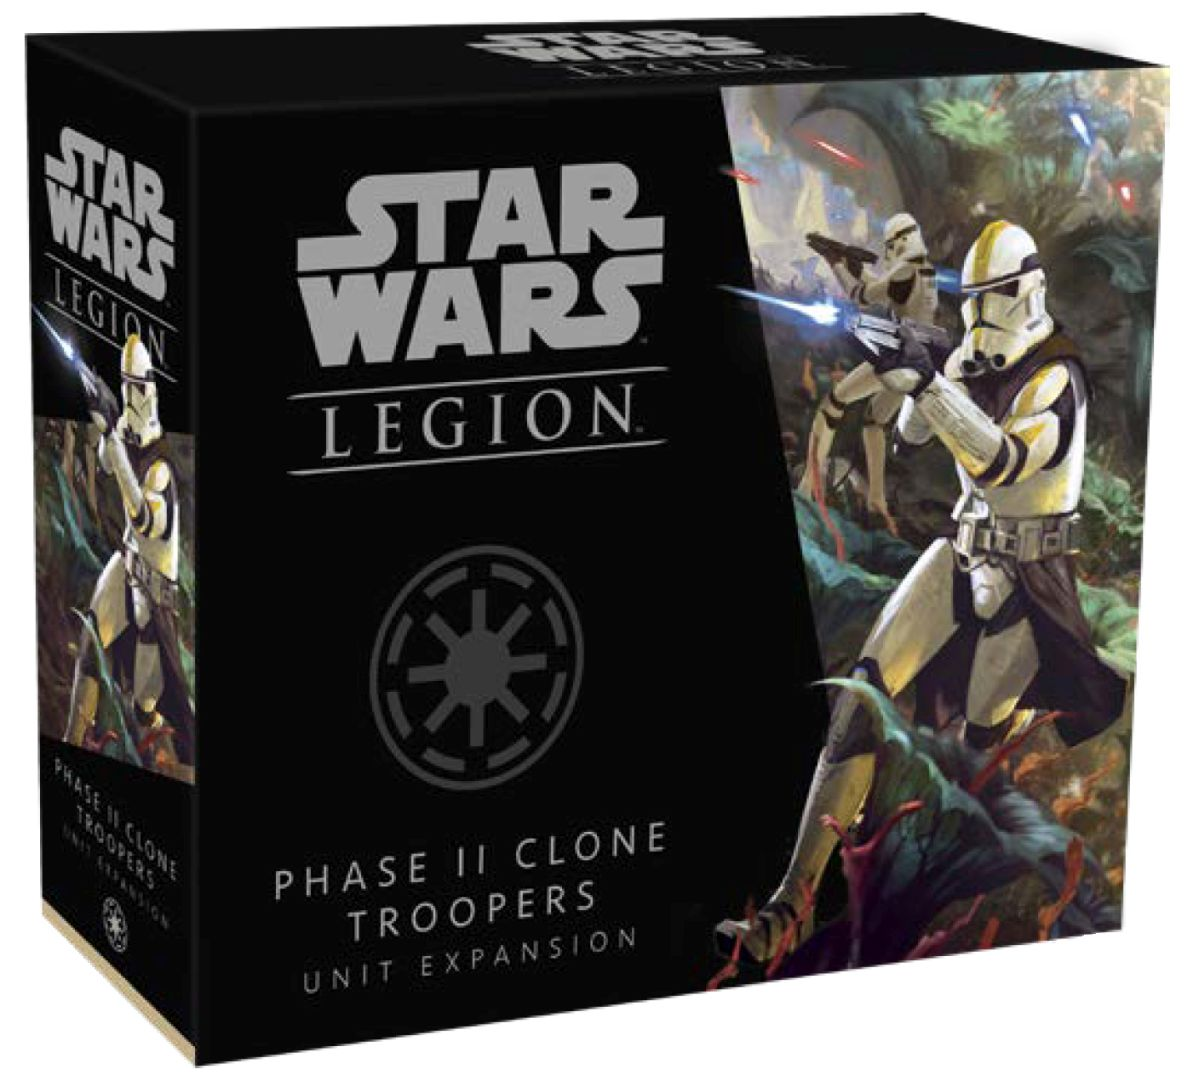 Star Wars: Legion Phase II Clone  Troopers Unit Expansion | Lvl Up Gaming UK